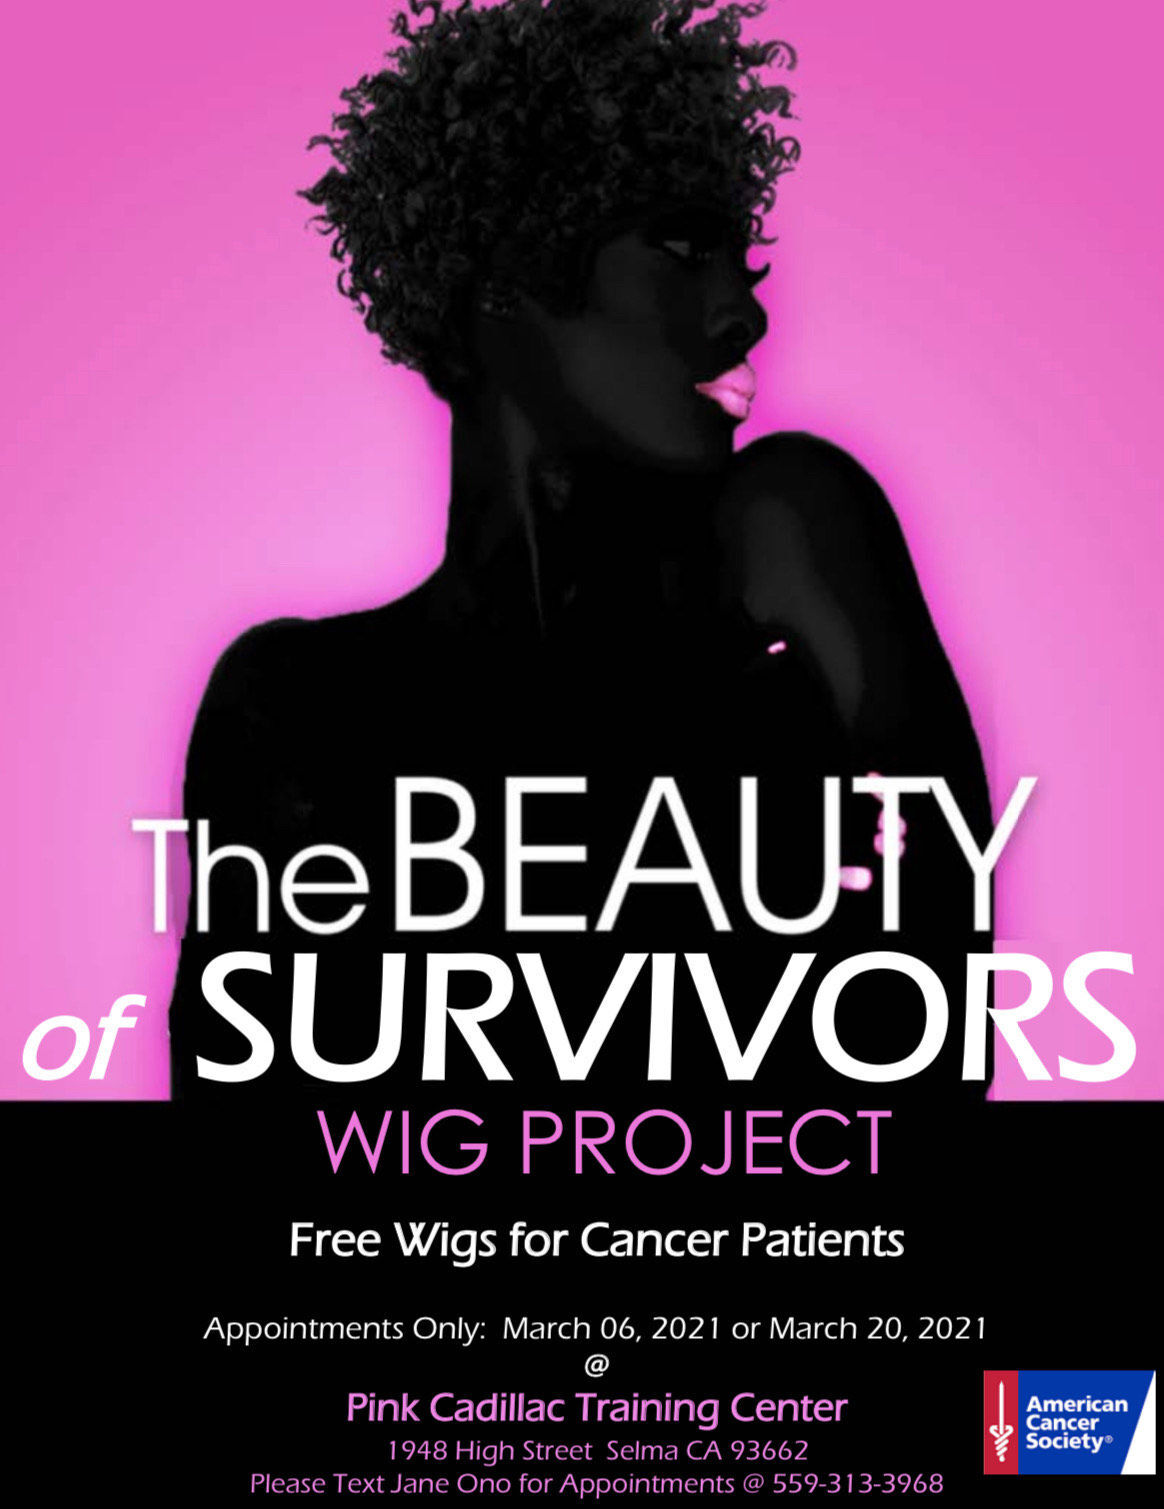 Project to donate 100 wigs to cancer survivors